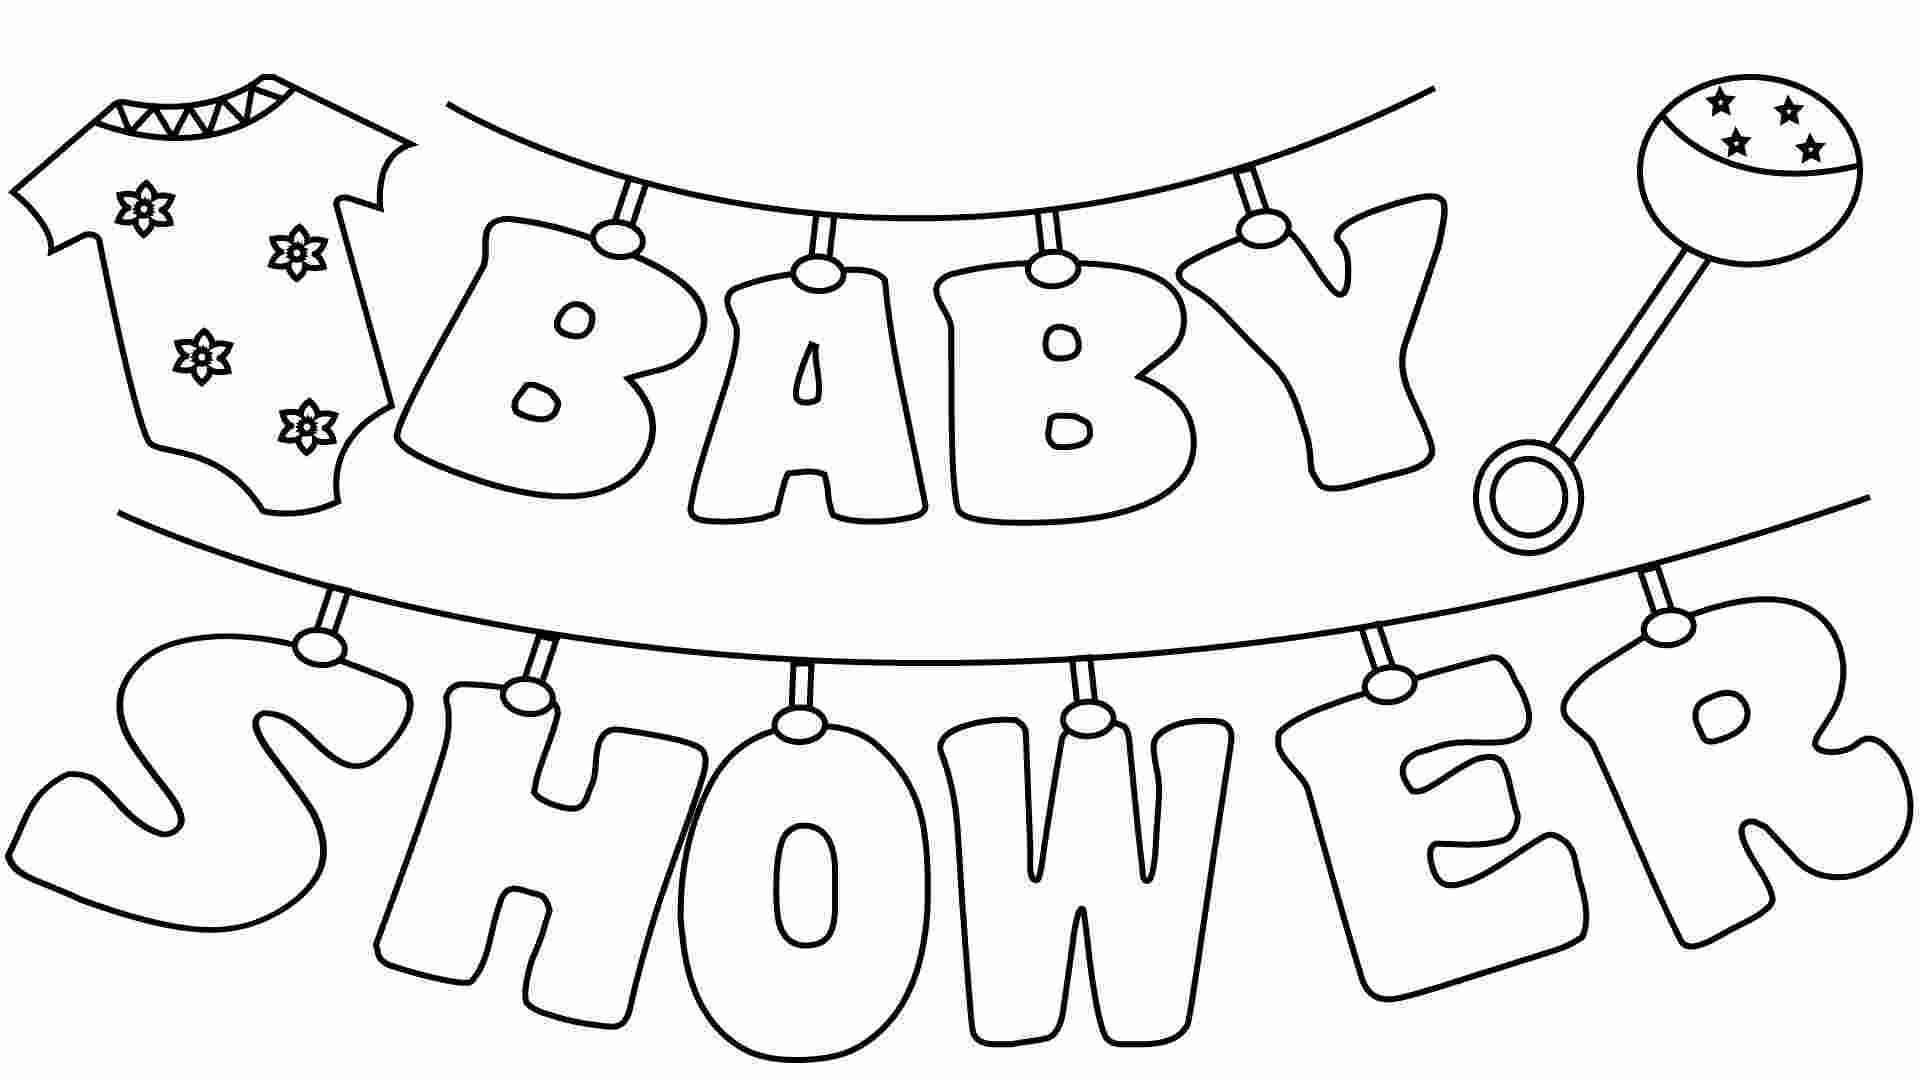 Coloring Book Printable Baby Shower Coloring Pages More Than 100 Amazing Coloring Sheets In 2020 Sprinkle Baby Shower Baby Shower Printables Baby Coloring Pages